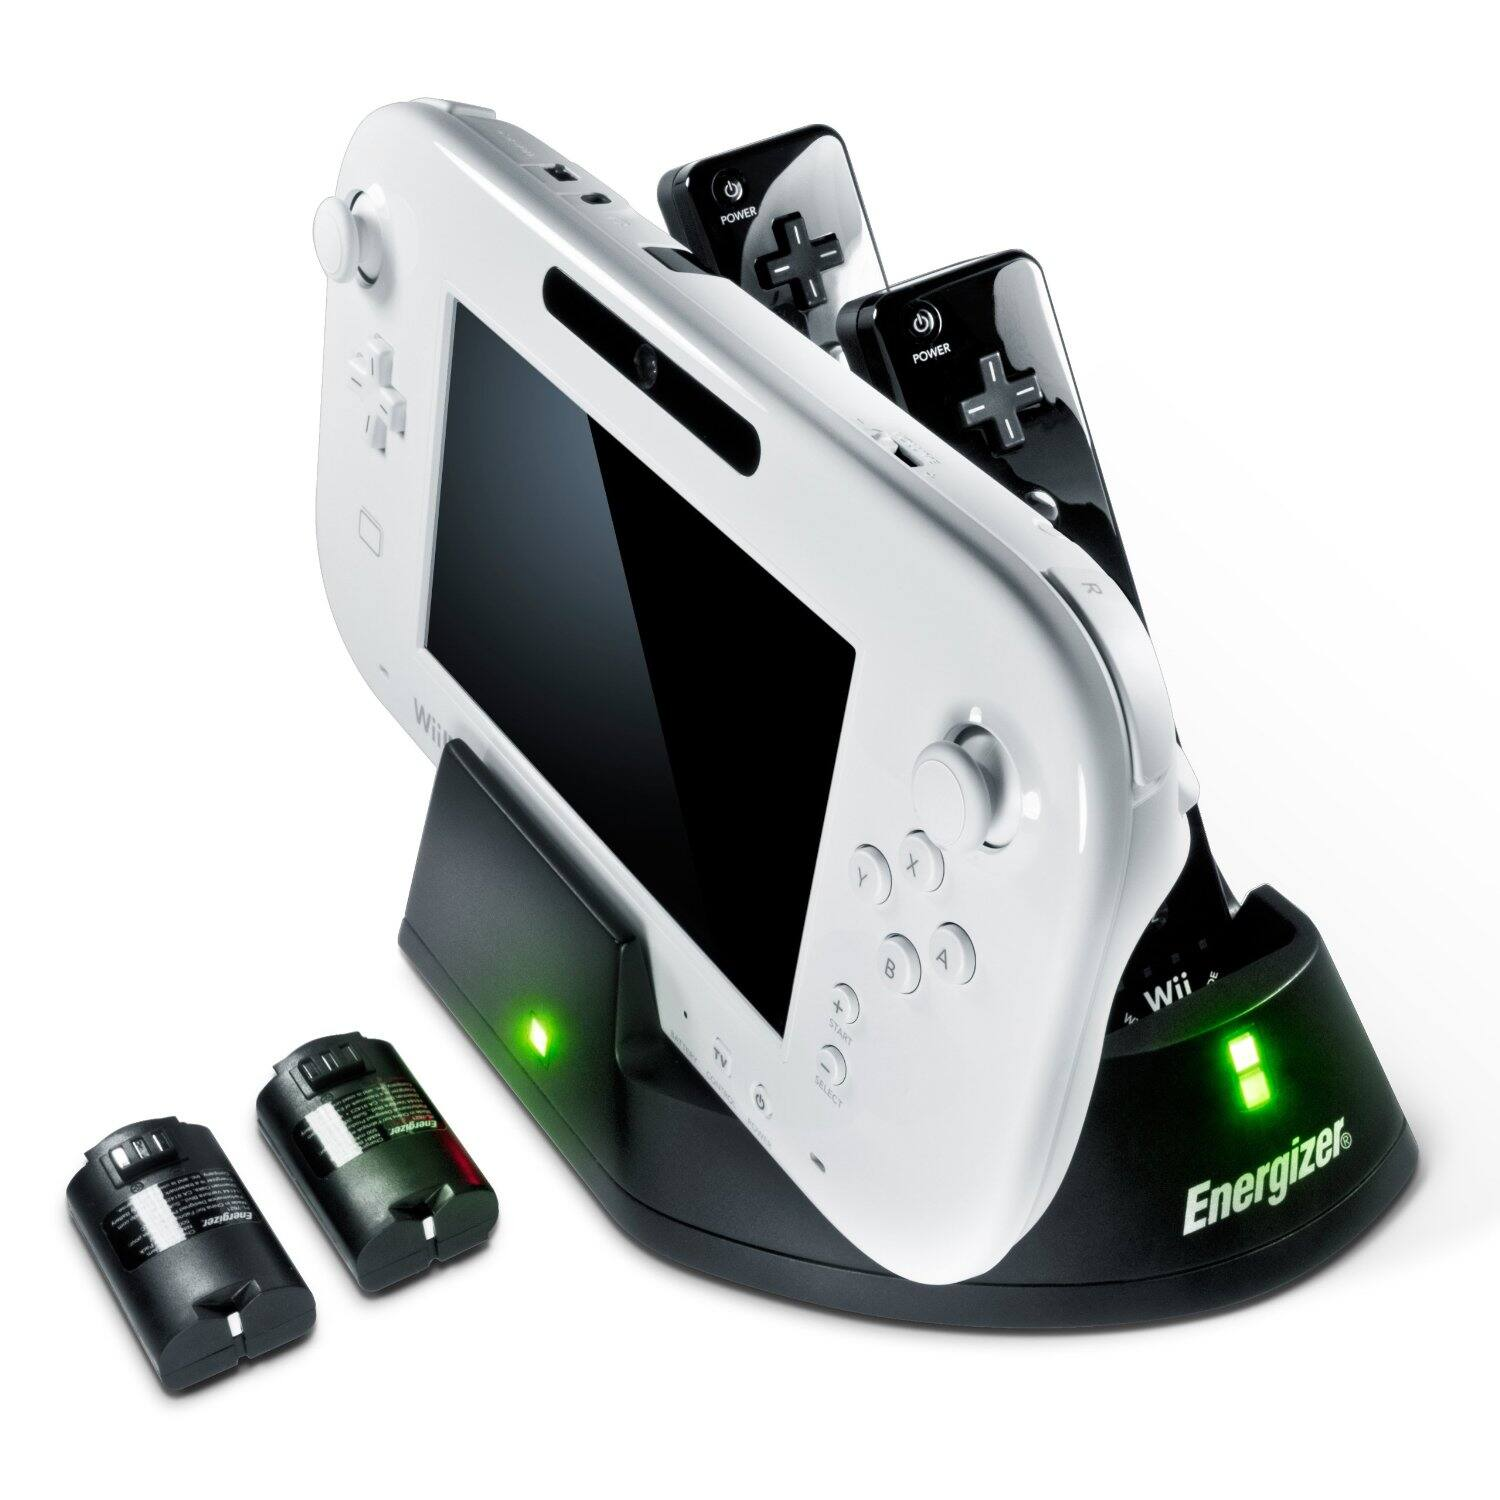 Energizer 3x Charge Station for Wii U  $12